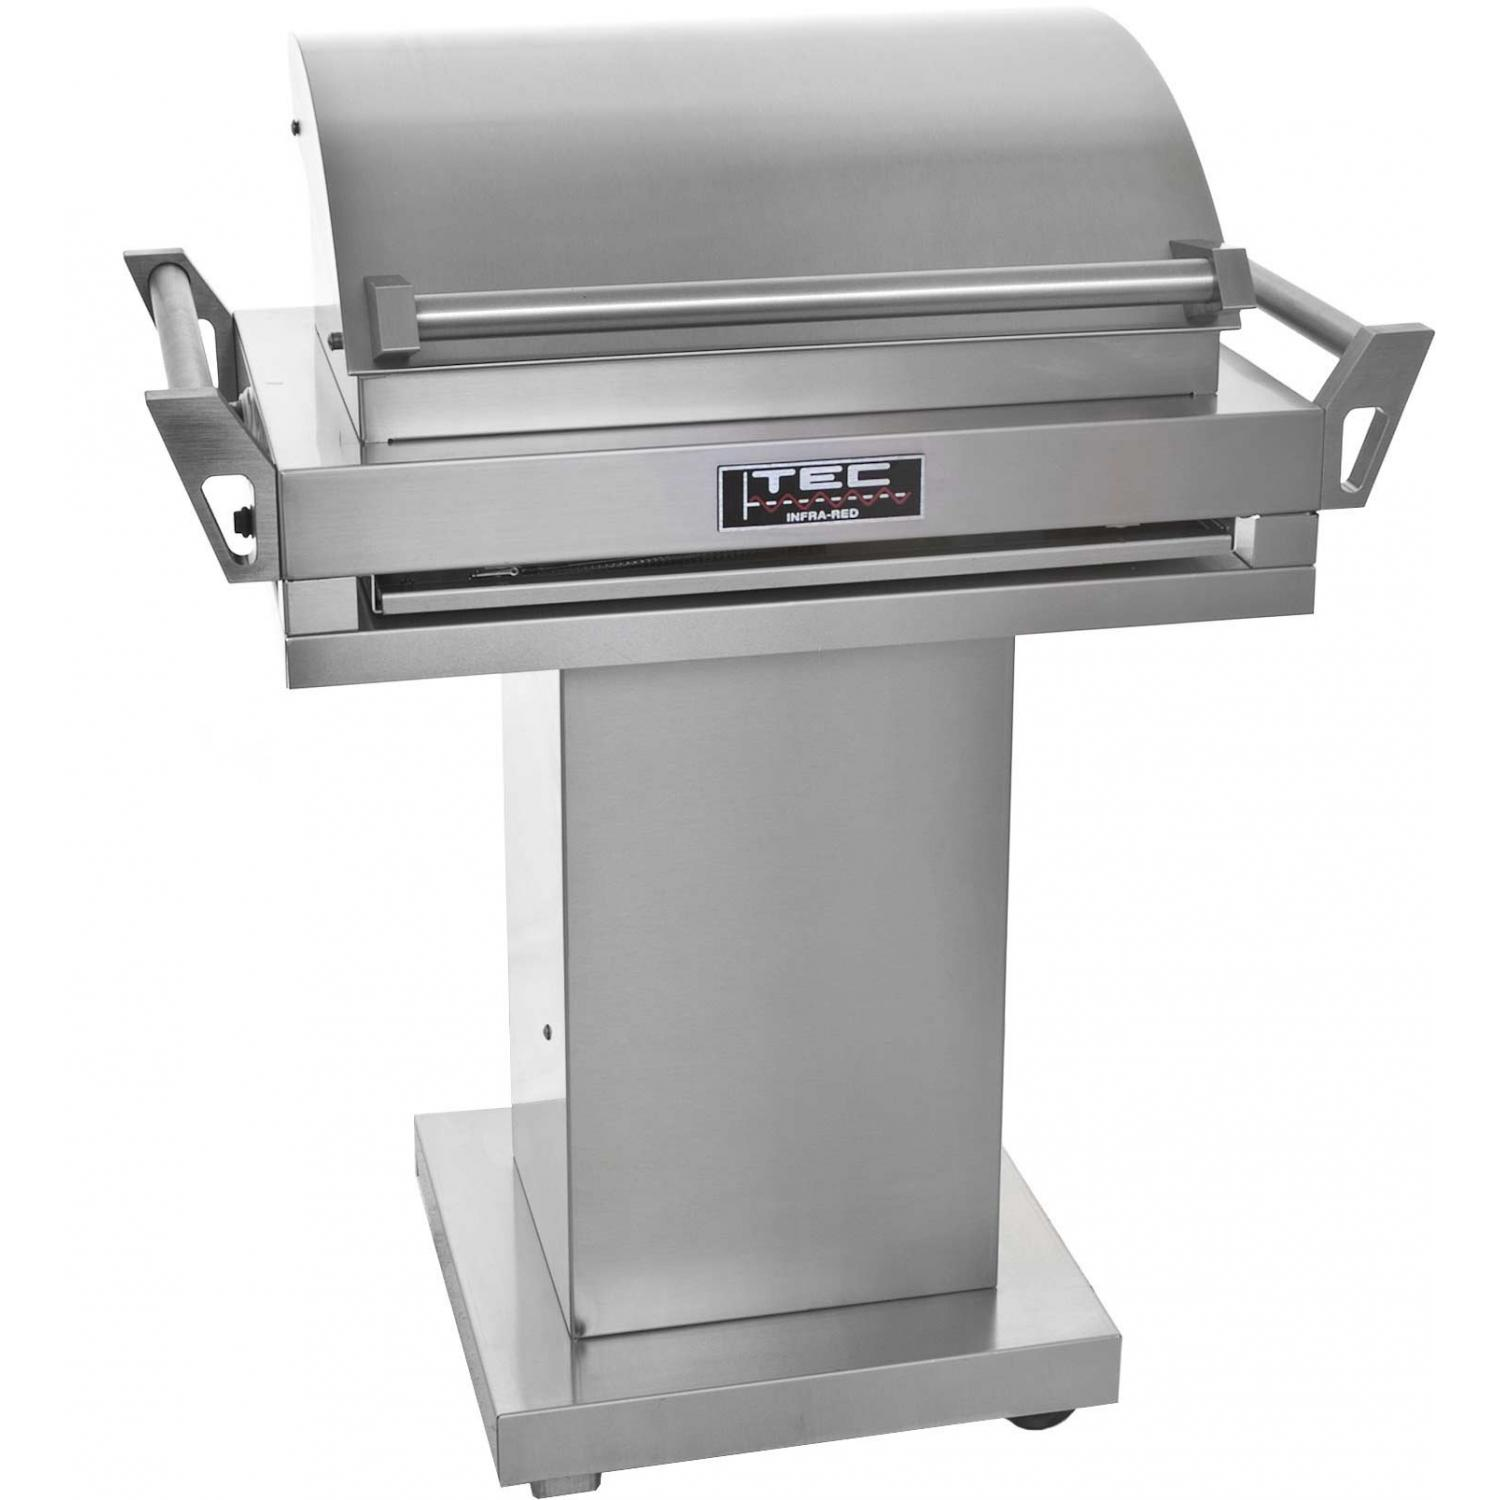 TEC G-Sport FR Natural Gas Grill On Removable Pedestal